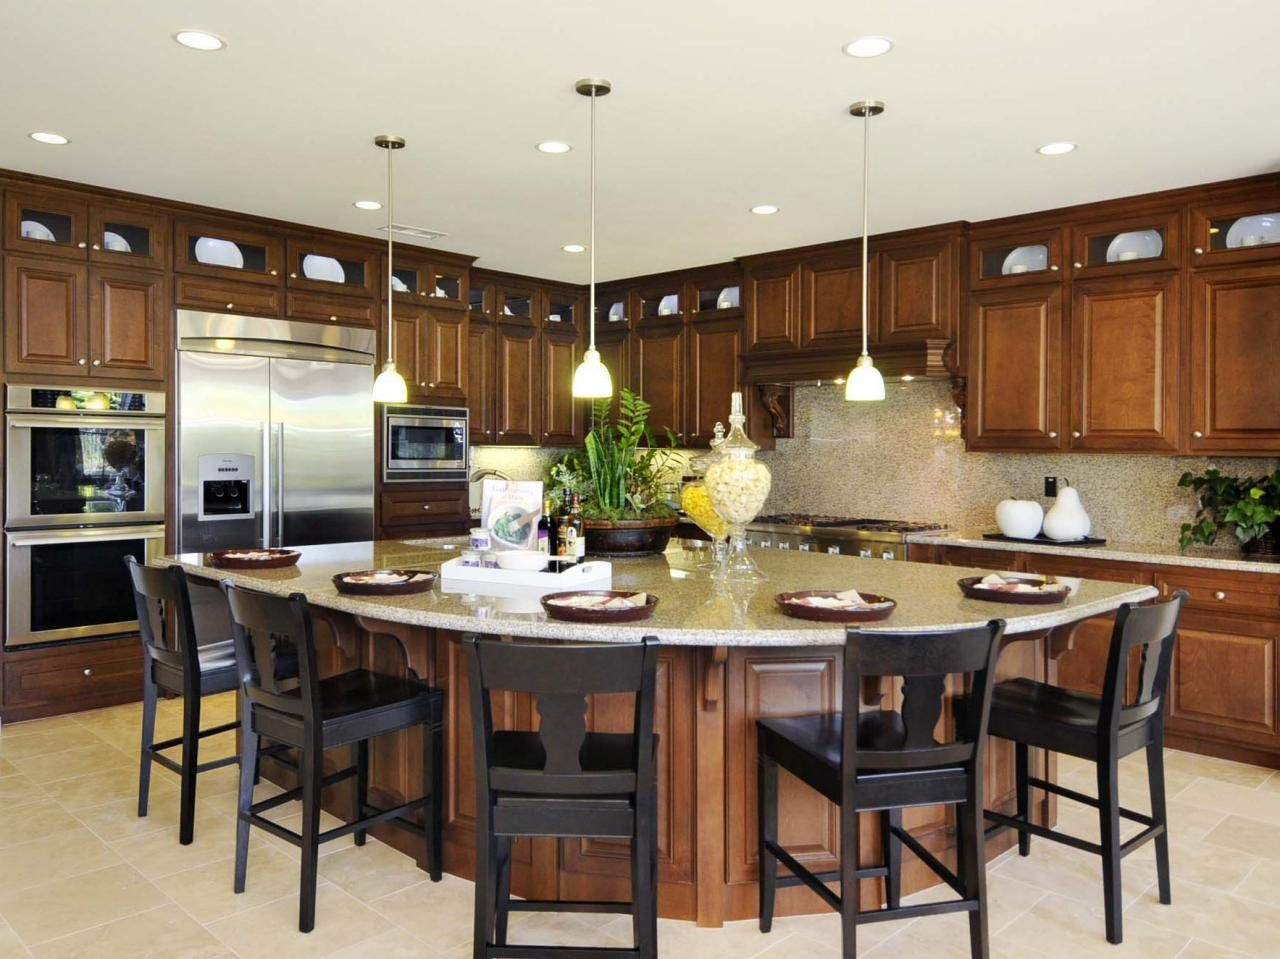 kitchen island design ideas pictures options tips island kitchen big island and hgtv. Black Bedroom Furniture Sets. Home Design Ideas